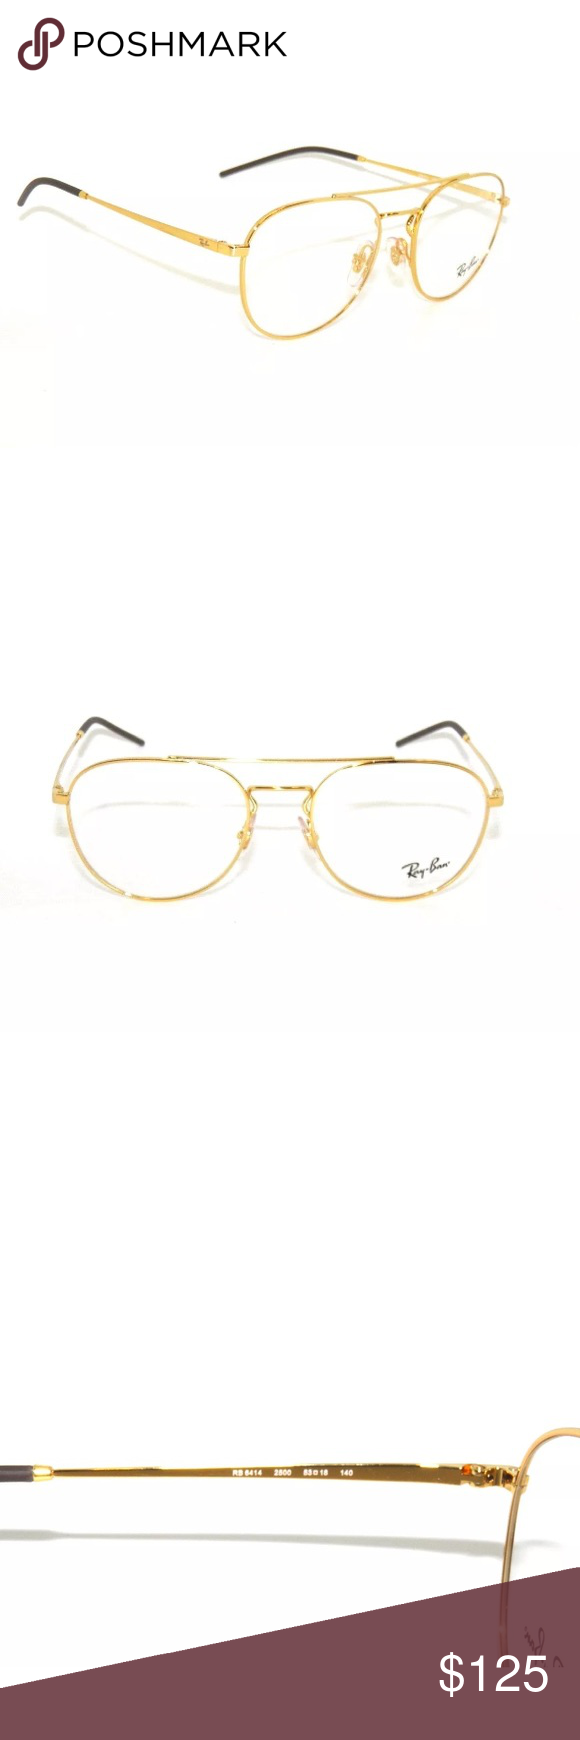 f5b9a2e35a Rayban Eyeglasses 6414 Gold frame and clear lens New with clear lens  Authentic Comes with rayban case Ray-Ban Accessories Glasses